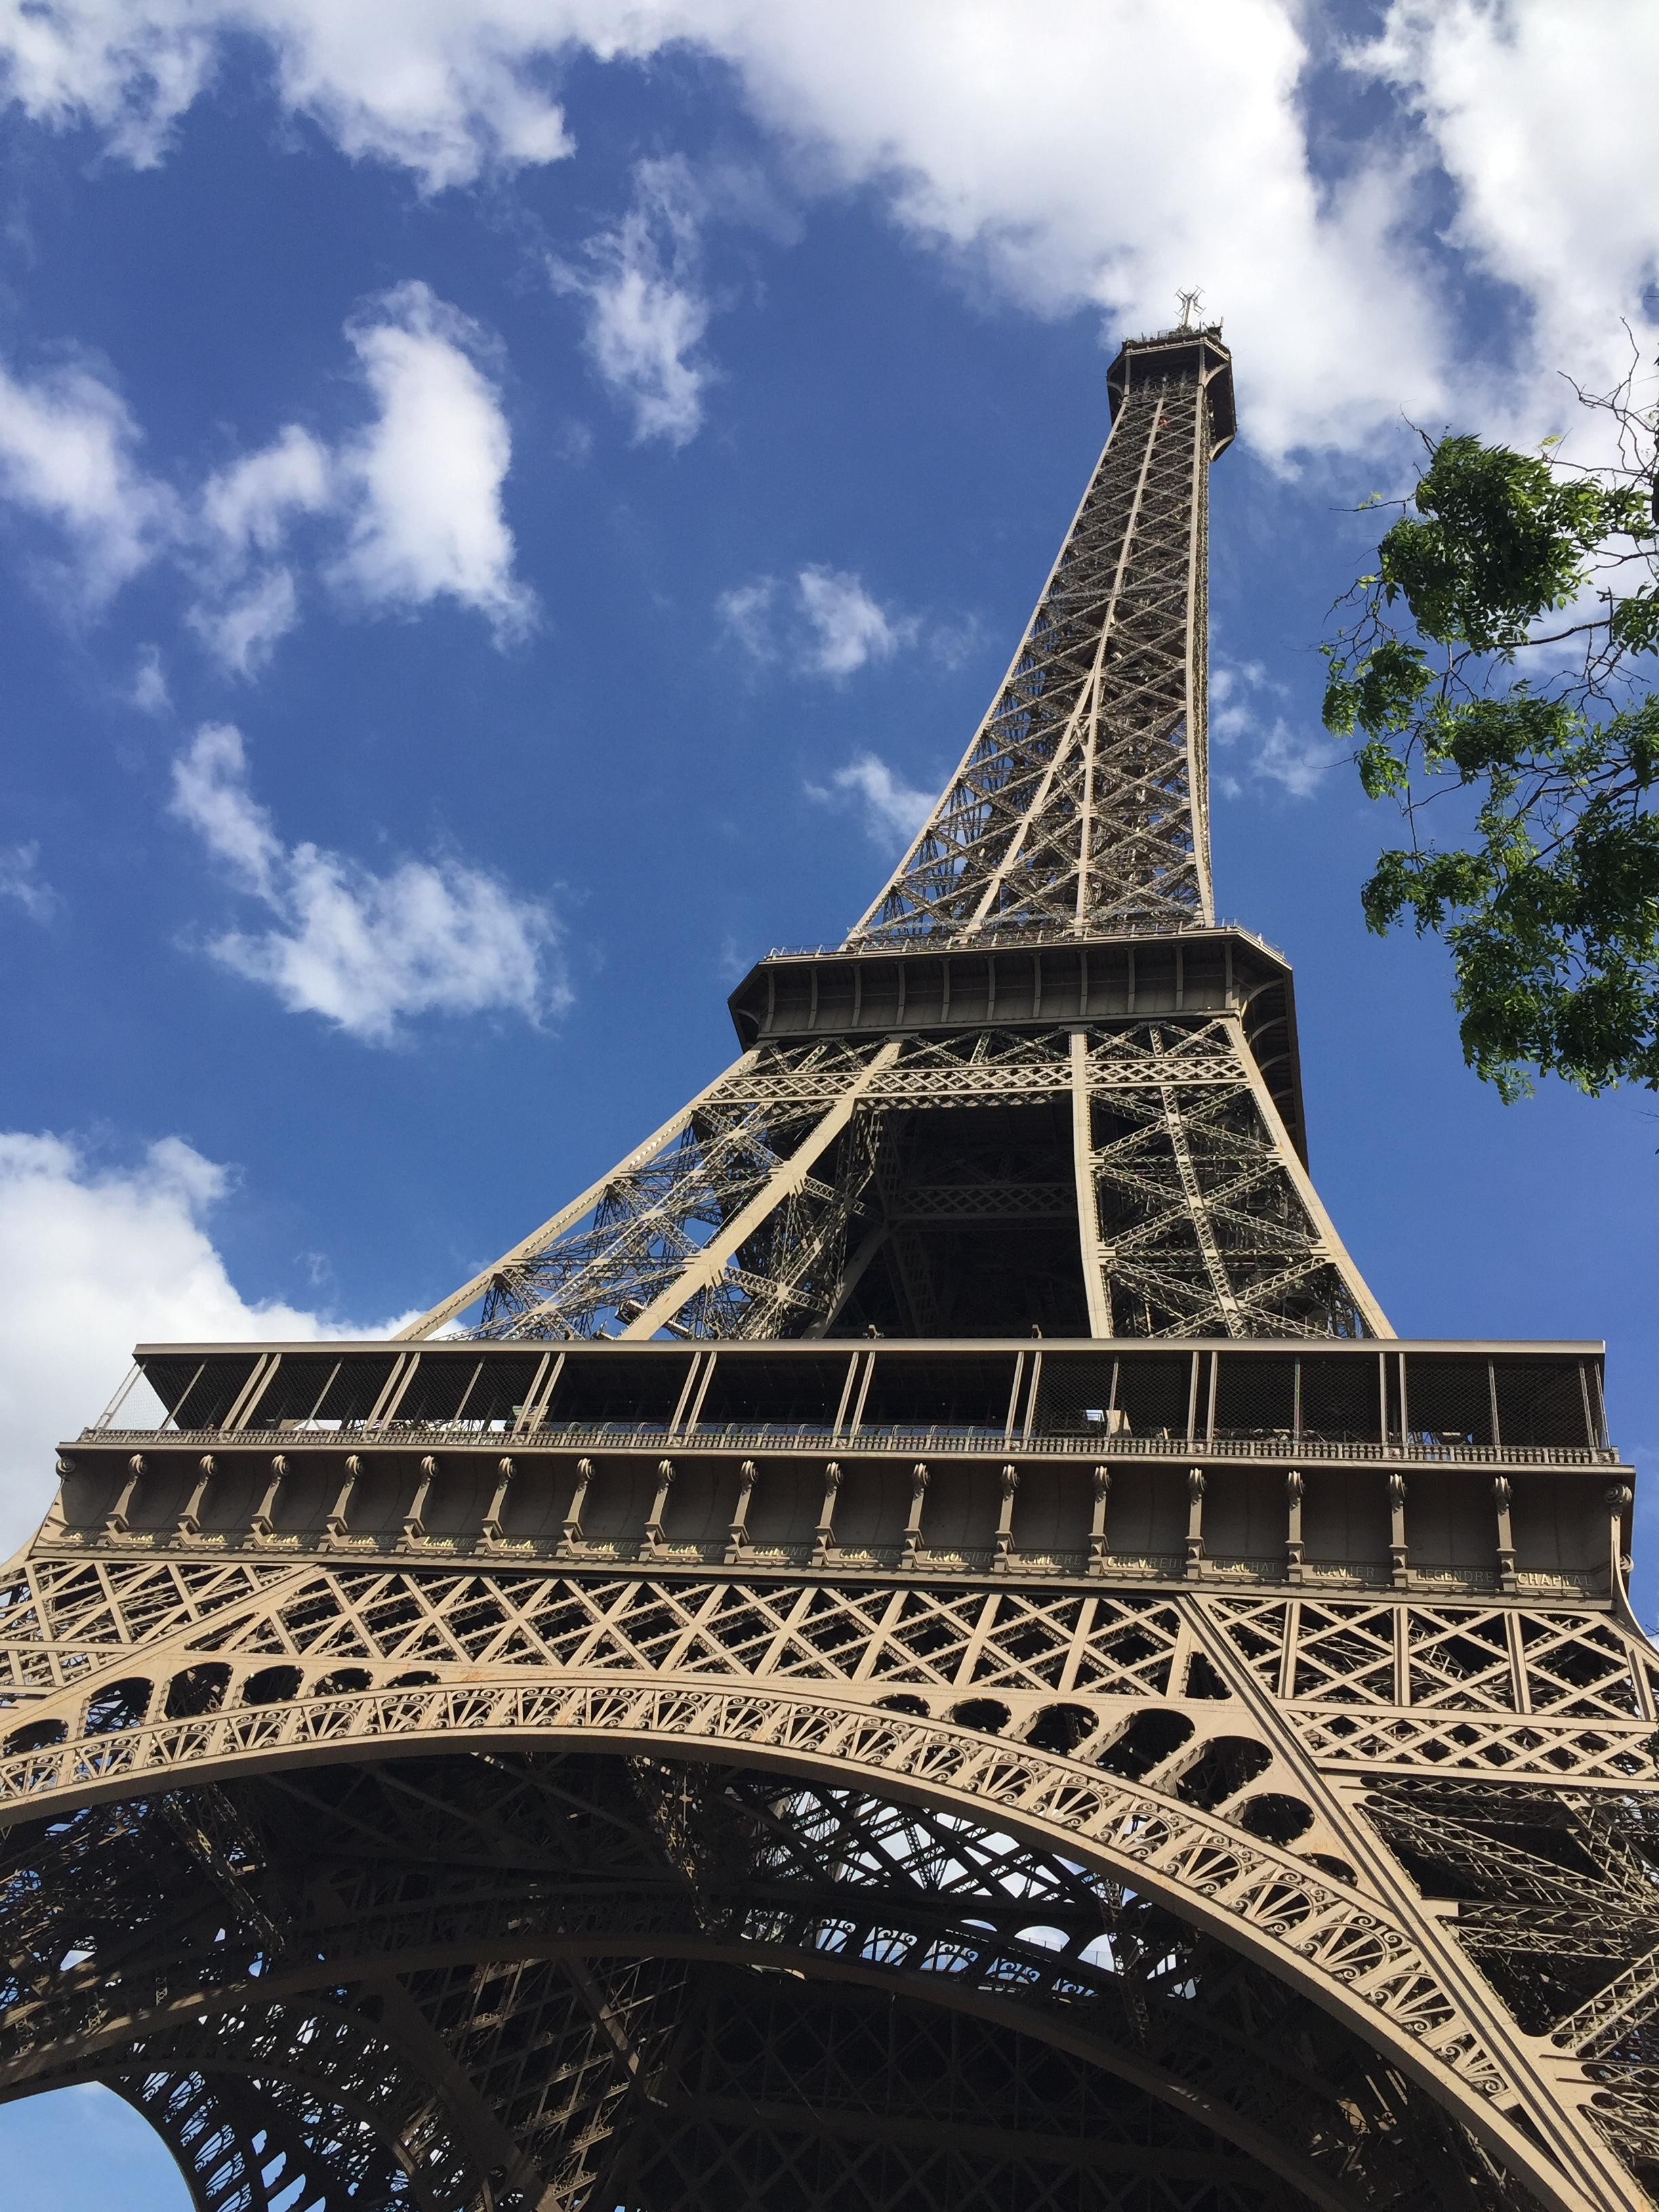 Gomez and I spent 4 hours lying under the Eiffel Tower, singing songs from Frozen, and stuffing ourselves with fresh bread and cheese.